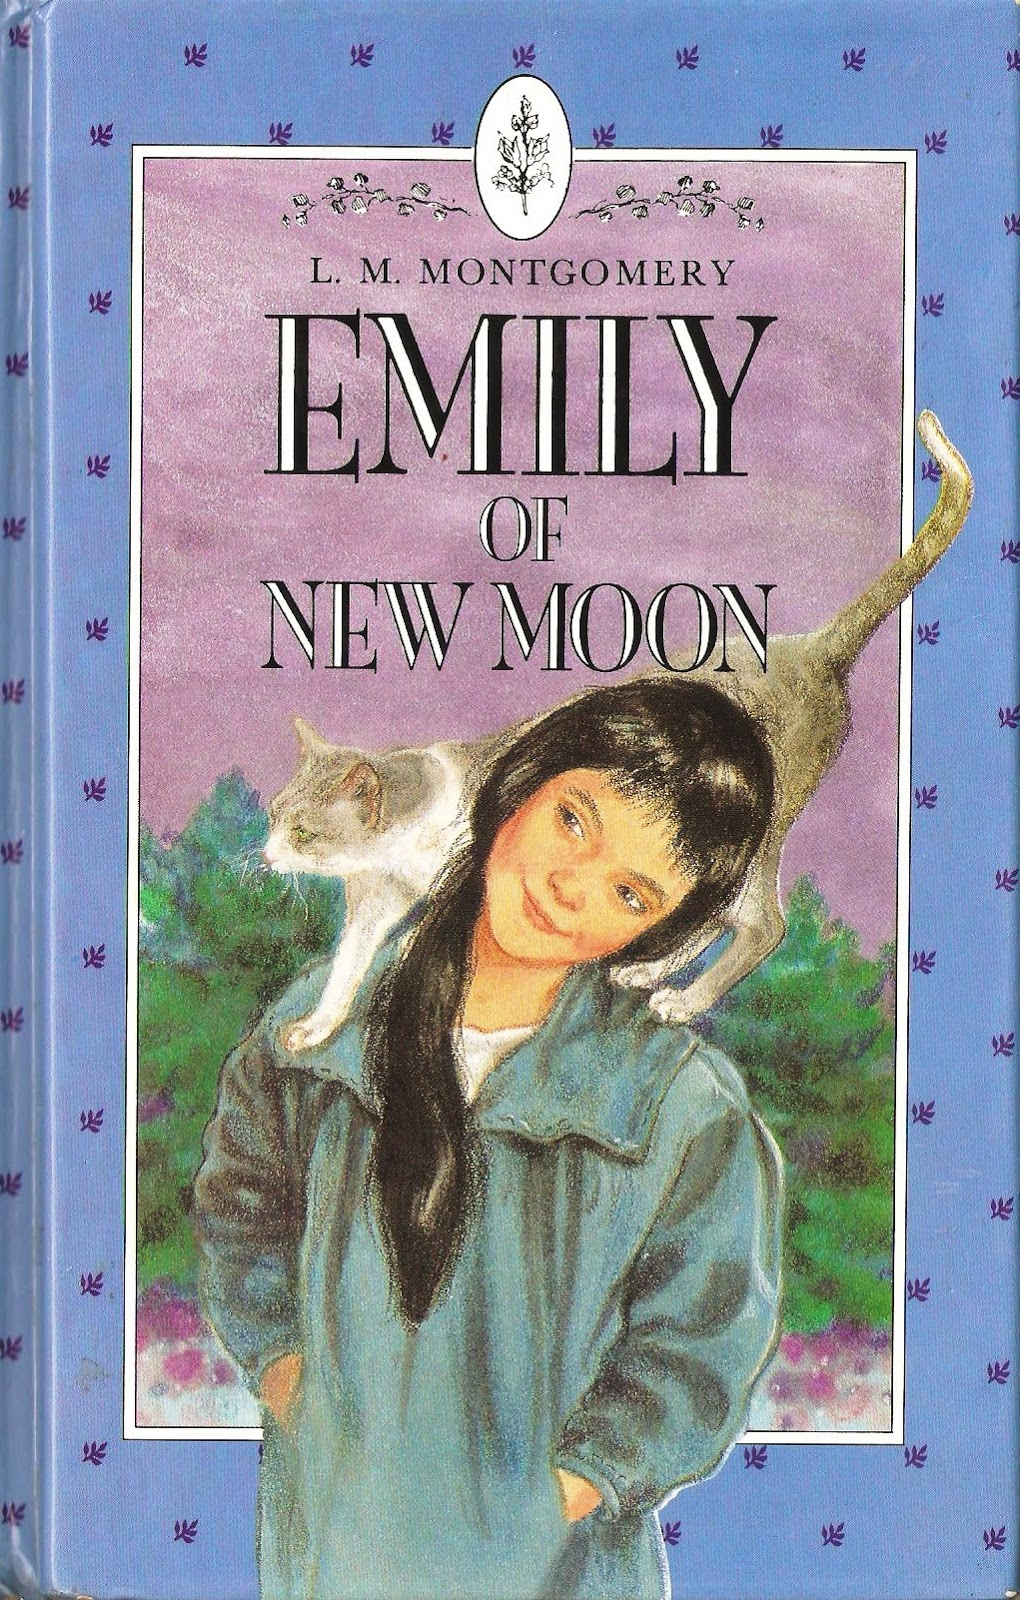 Emily of new moon book summary